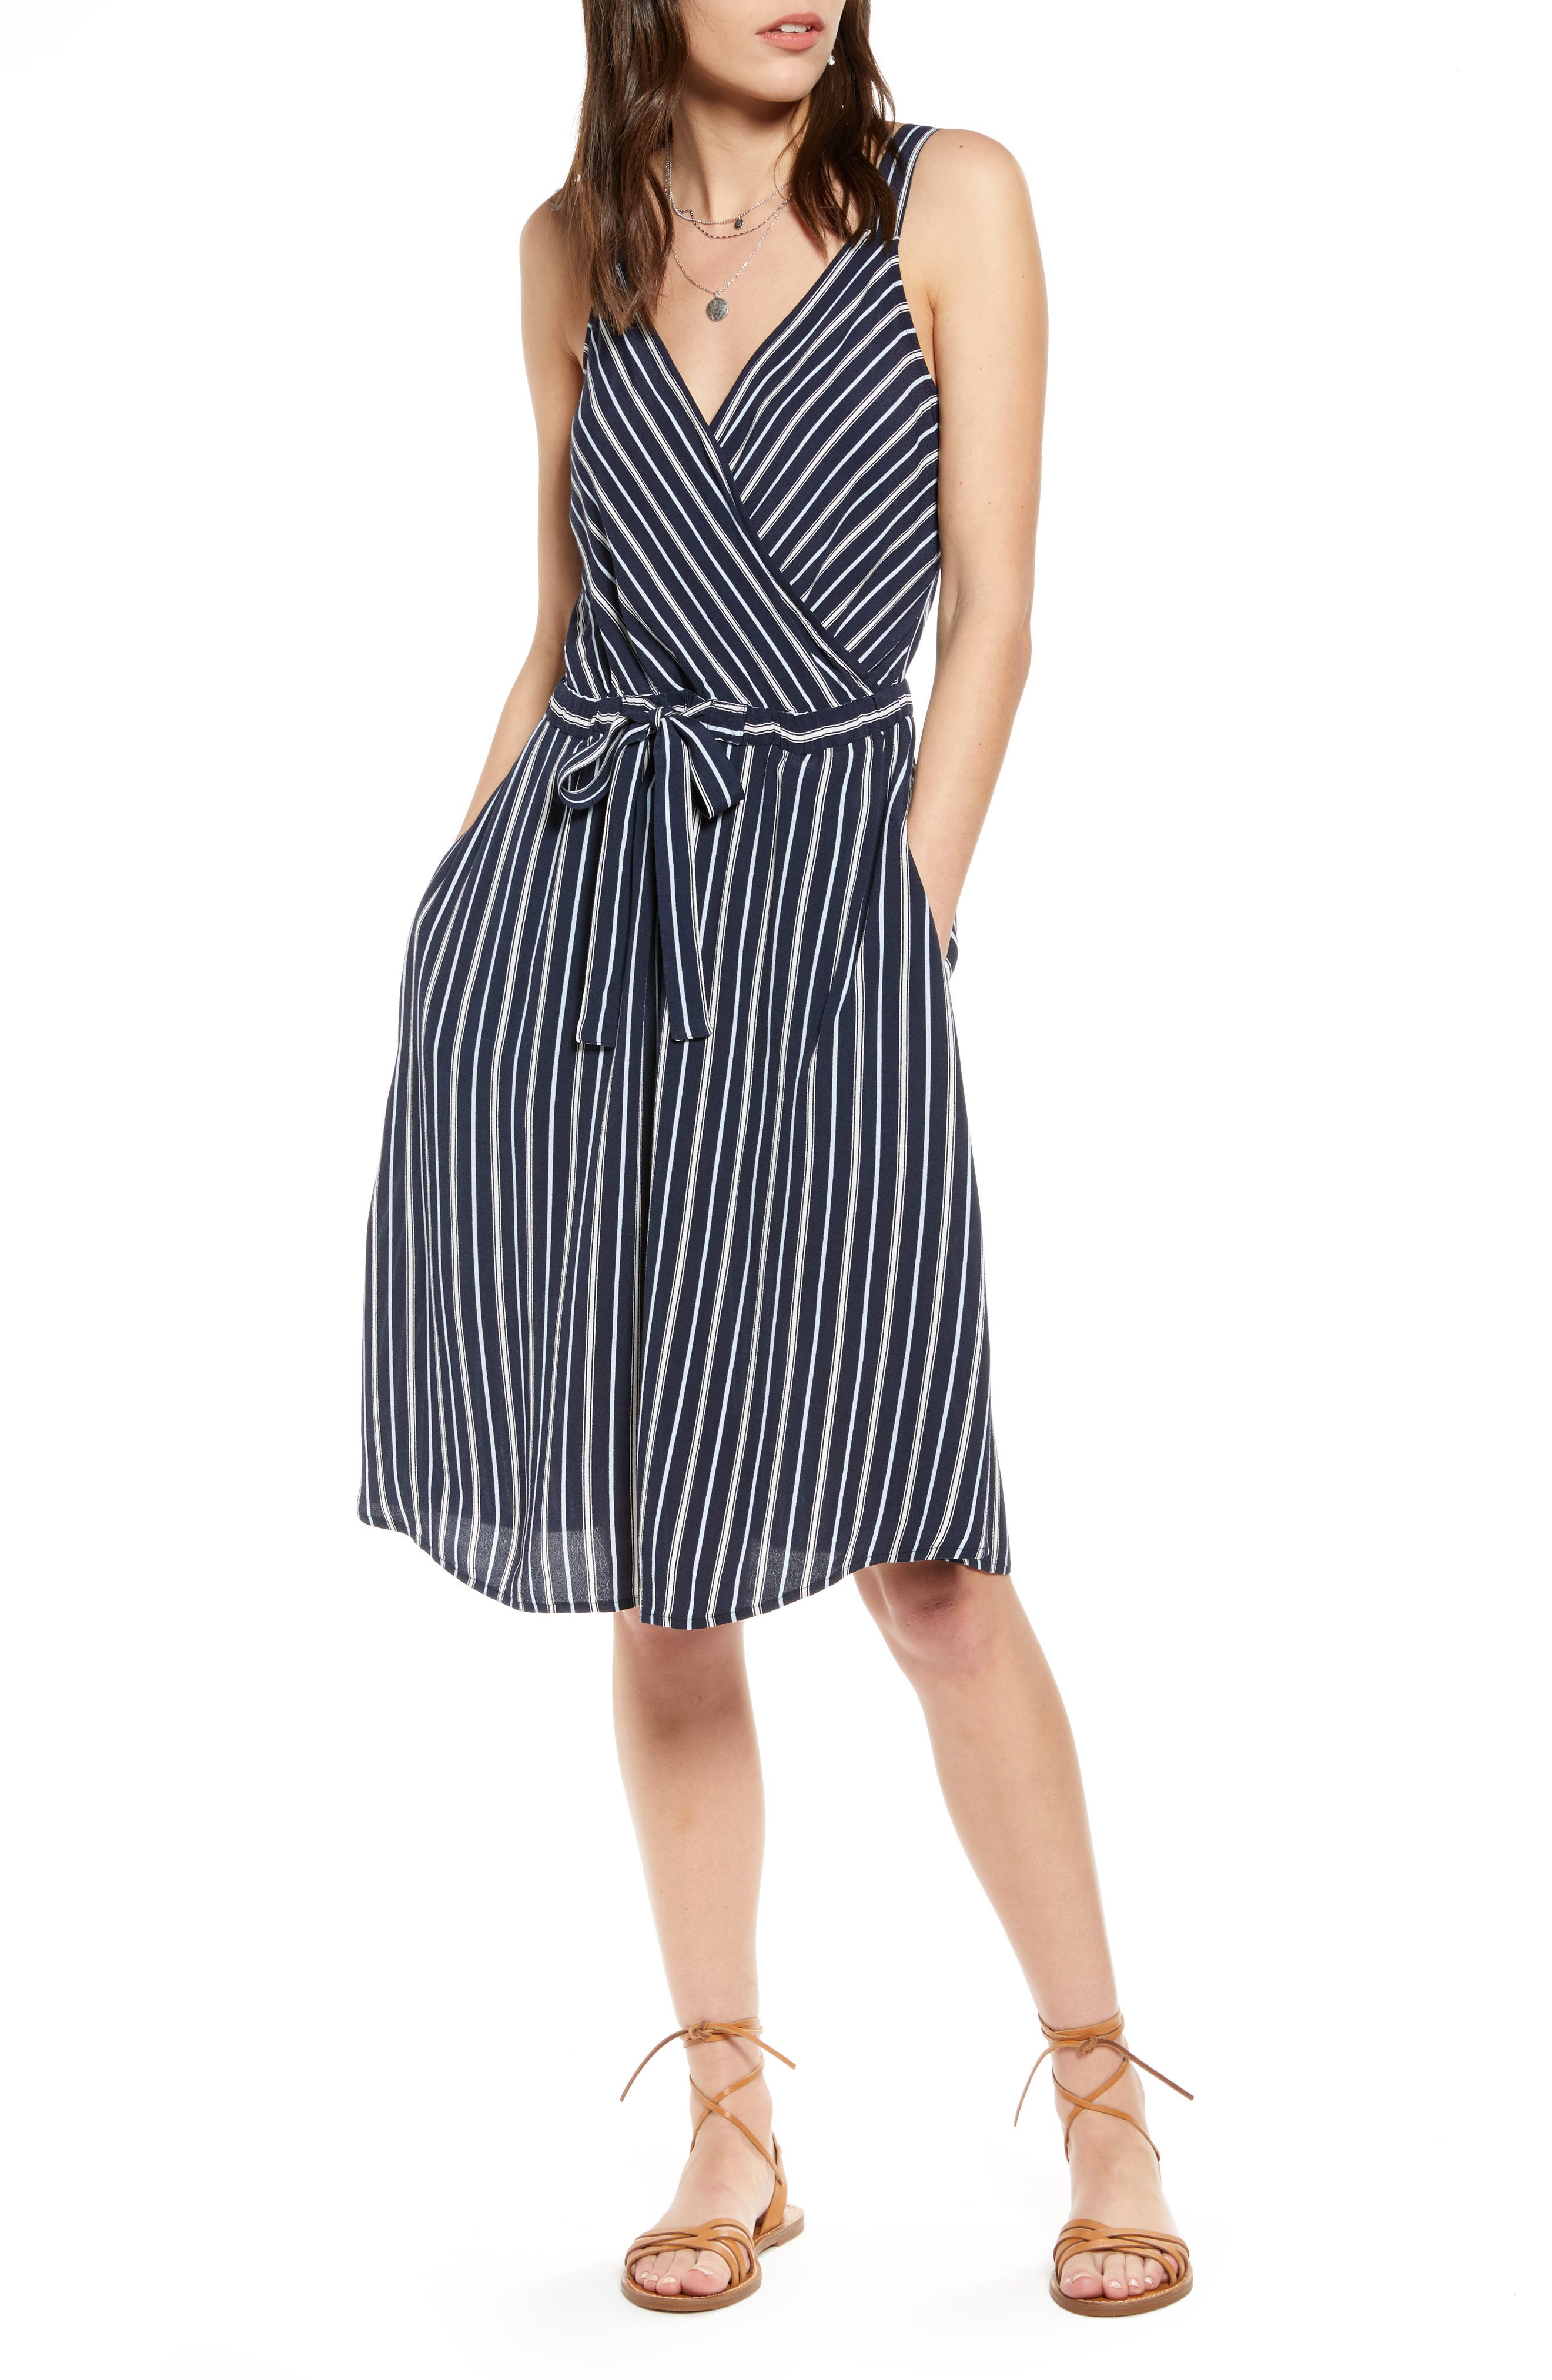 This flattering faux-wrap frock is styled in a sleeveless silhouette with slim stripes and a shapely tie waist. When you buy Treasure & Bond, Nordstrom will donate 2.5% of net sales to organizations that work to empower youth. Style Name: Treasure & Bond Sleeveless Tie Waist Dress. Style Number: 5846221 2. Available in stores.